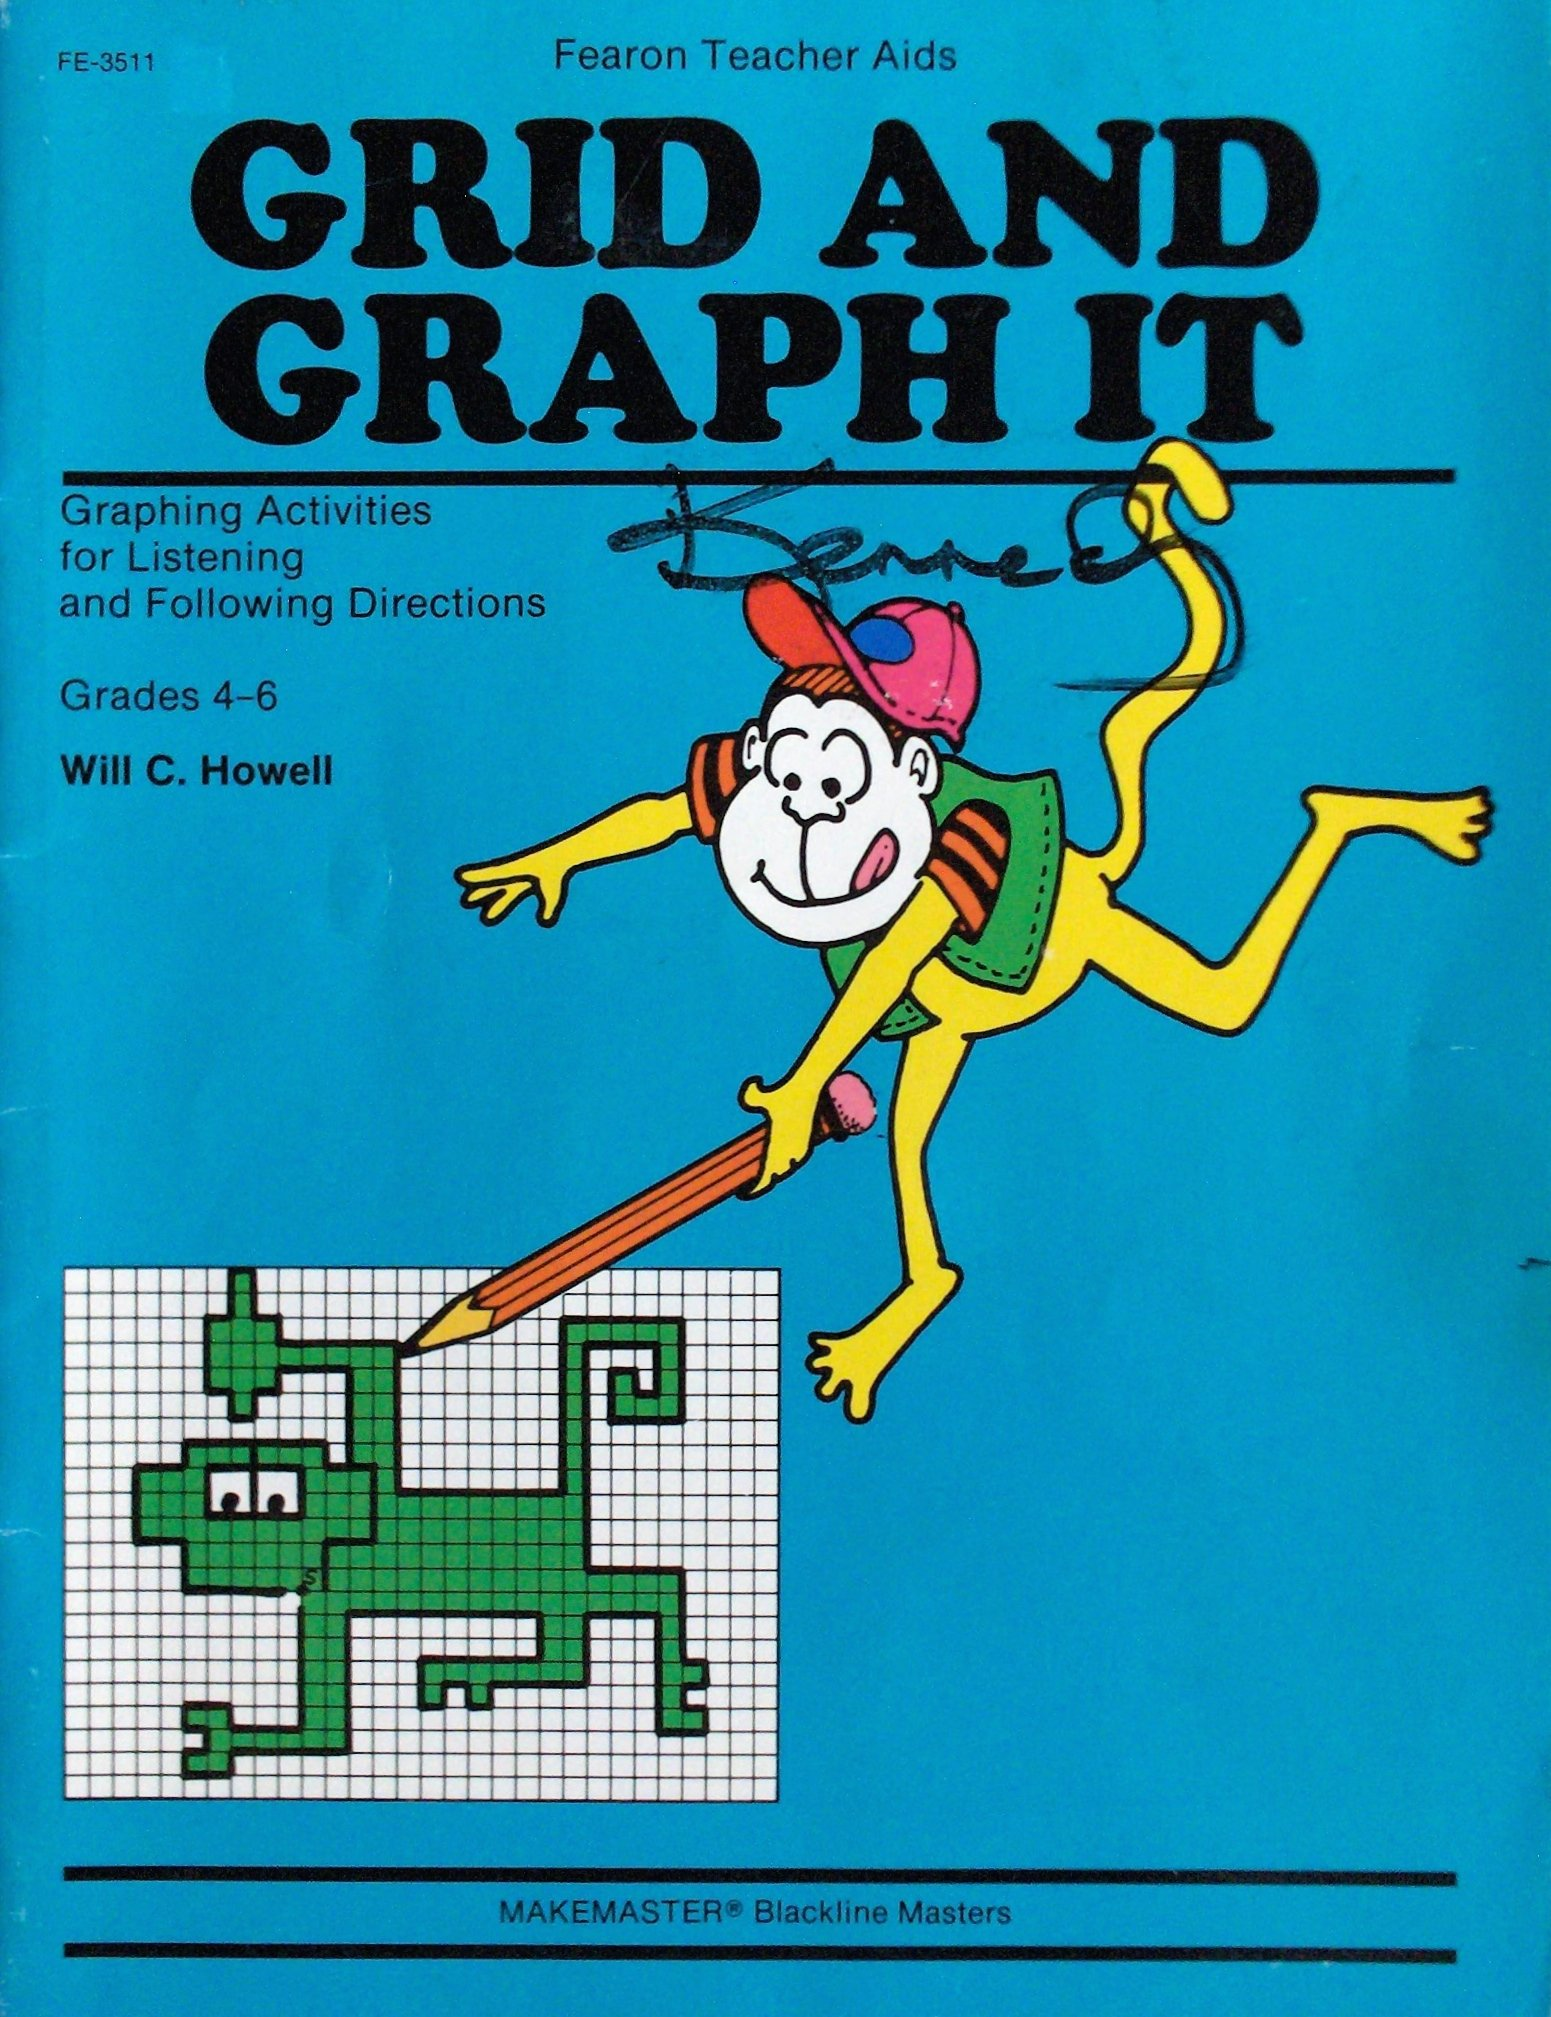 worksheet Grid And Graph It grid and graph it grades 4 6 will c howell 9780822435112 amazon com books